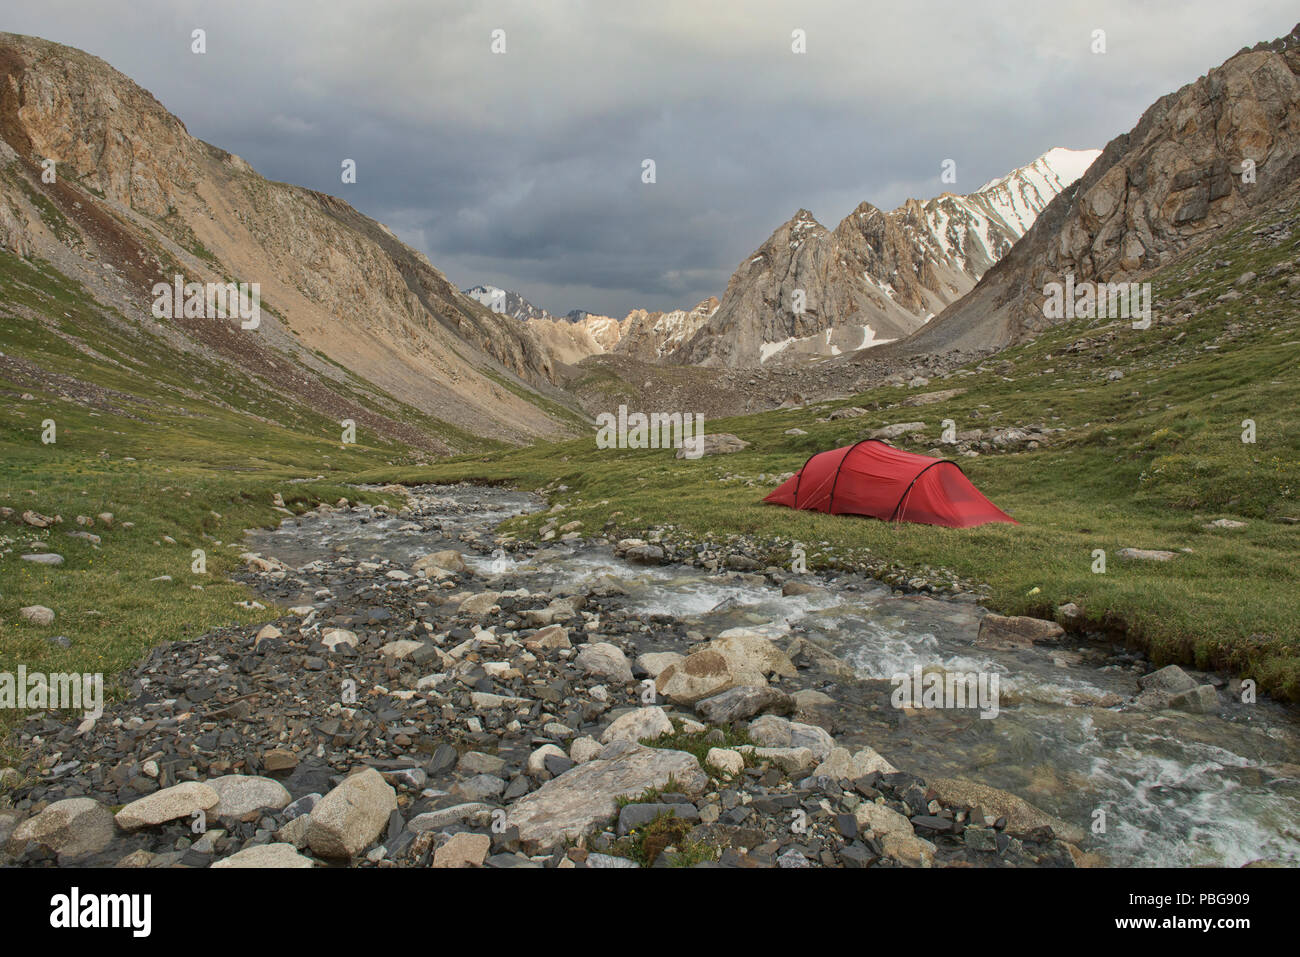 Alpine camp on the epic Heights of Alay route, Alay, Krygyzstan - Stock Image